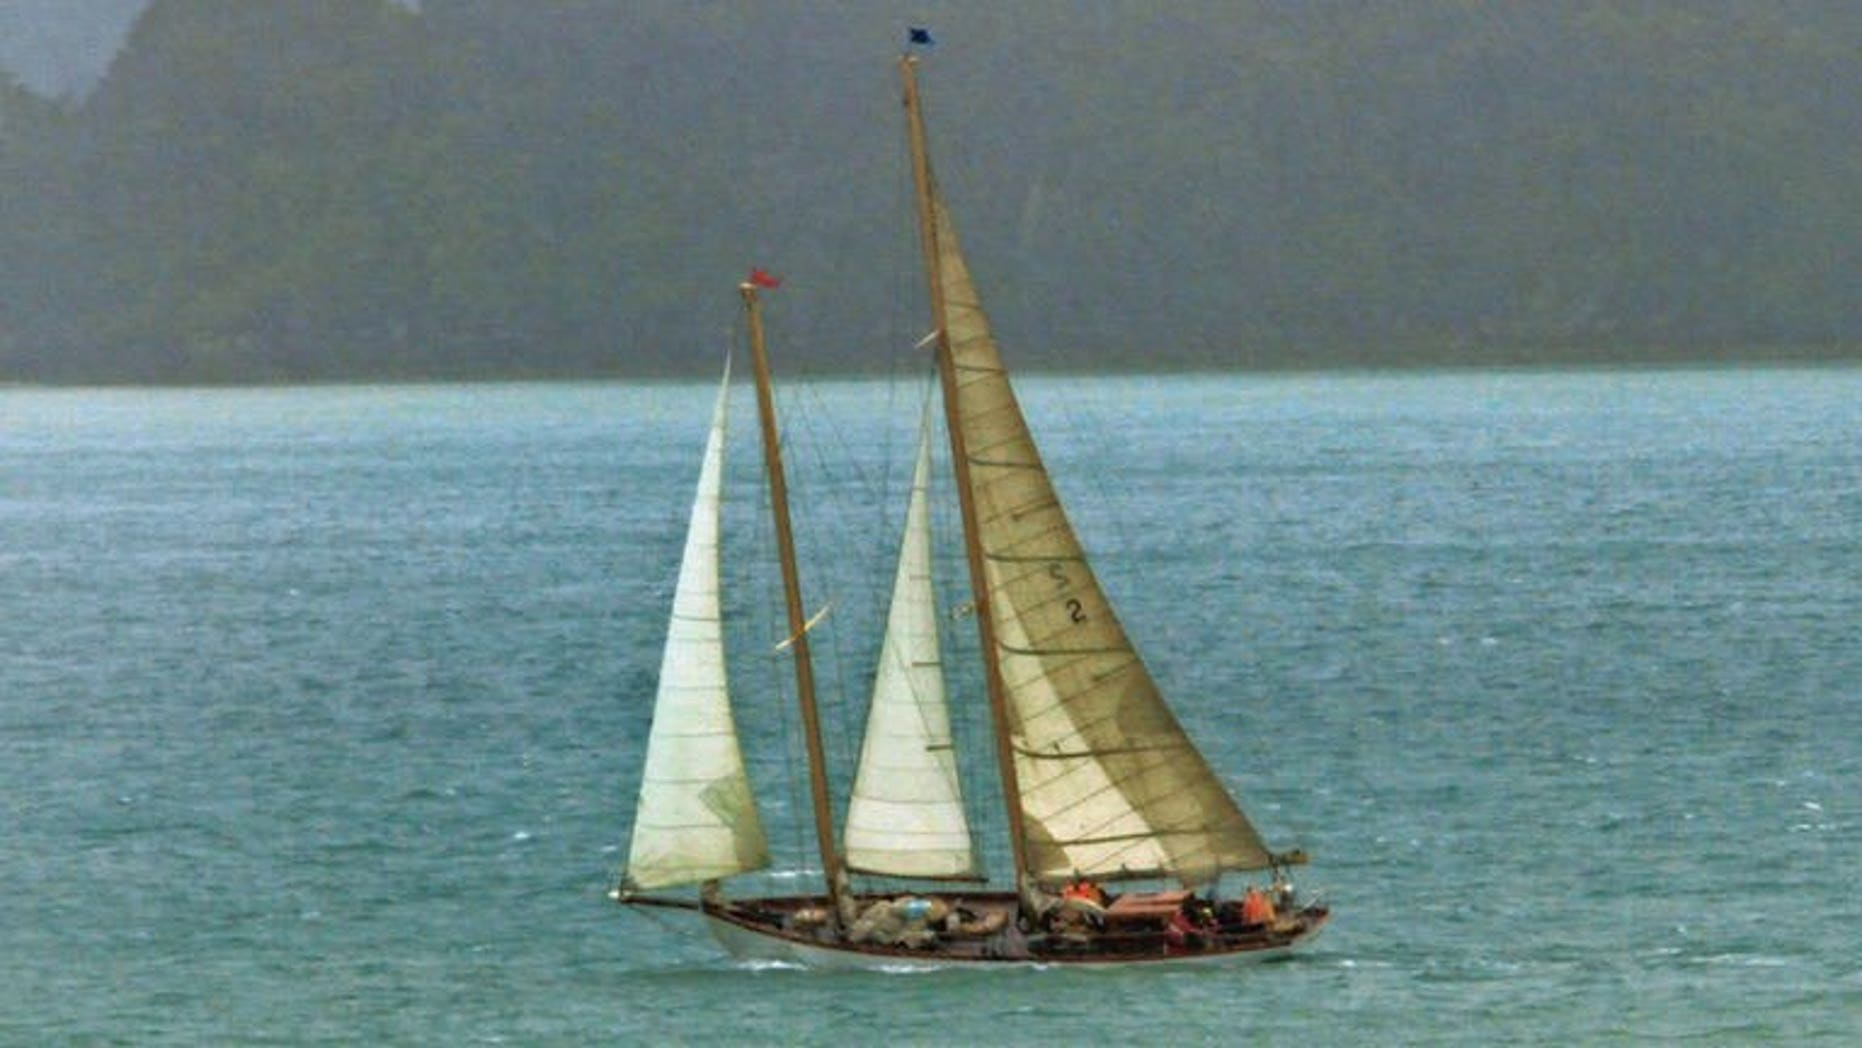 21-m (70-foot) vintage wooden yacht Nina, built in 1928, pictured during the Tall Ships and Classic Yacht regatta day, off Russell Village in Northland, New Zealand, in January 2012. Nina disappeared almost four weeks ago after setting off from New Zealand's North Island to cross the notorious Tasman Sea to Australia.